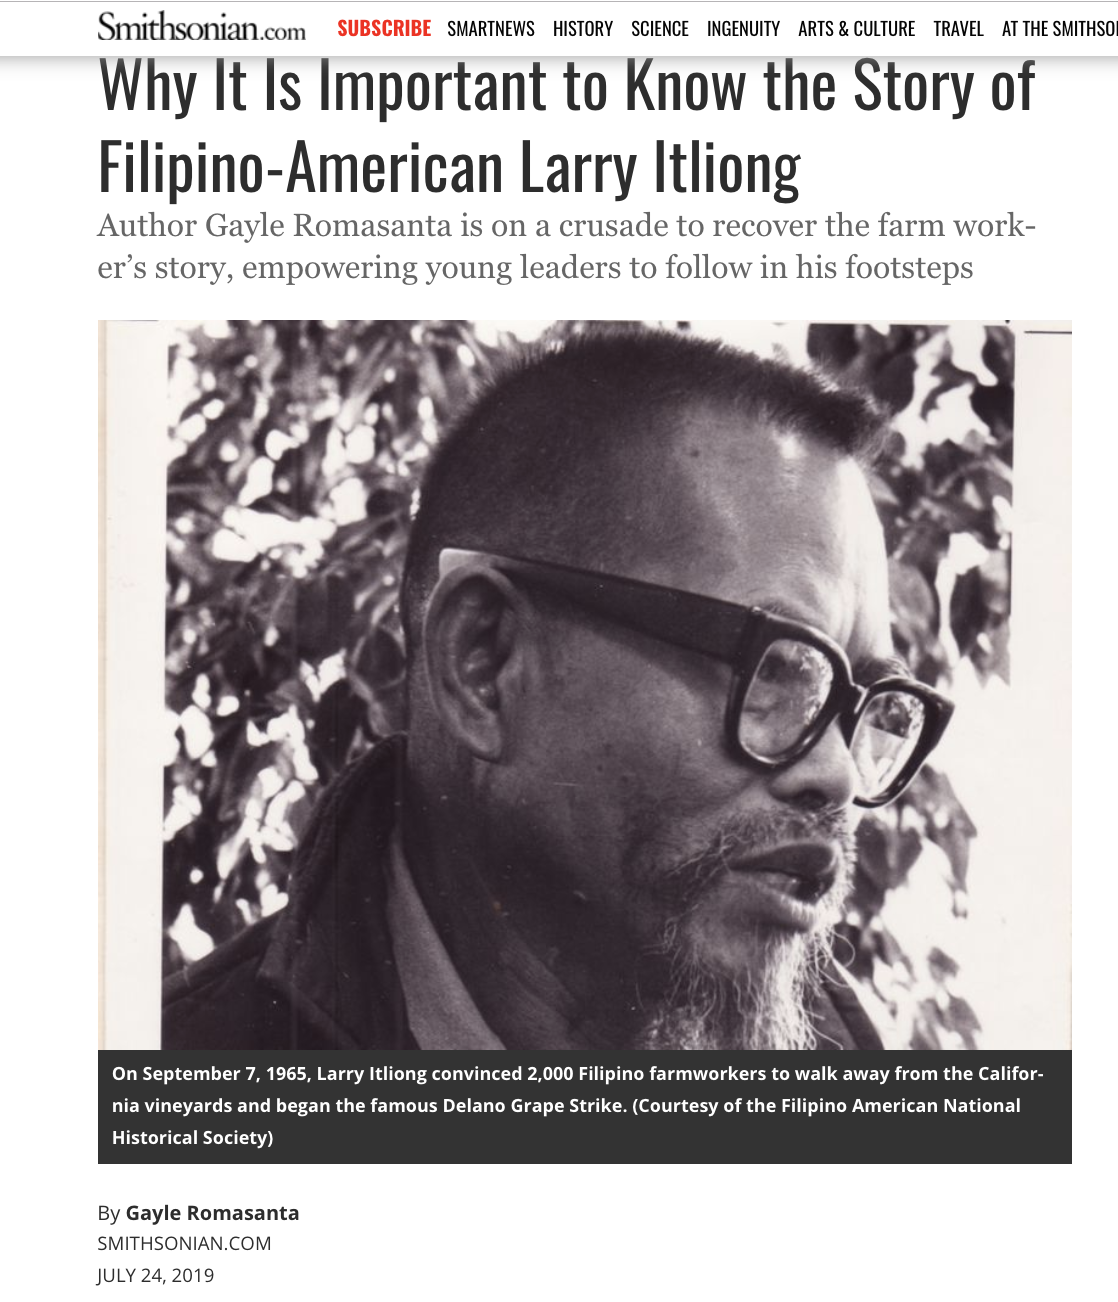 'Journey For Justice: The Life of Larry Itliong' featured in Smithsonian Magazine.